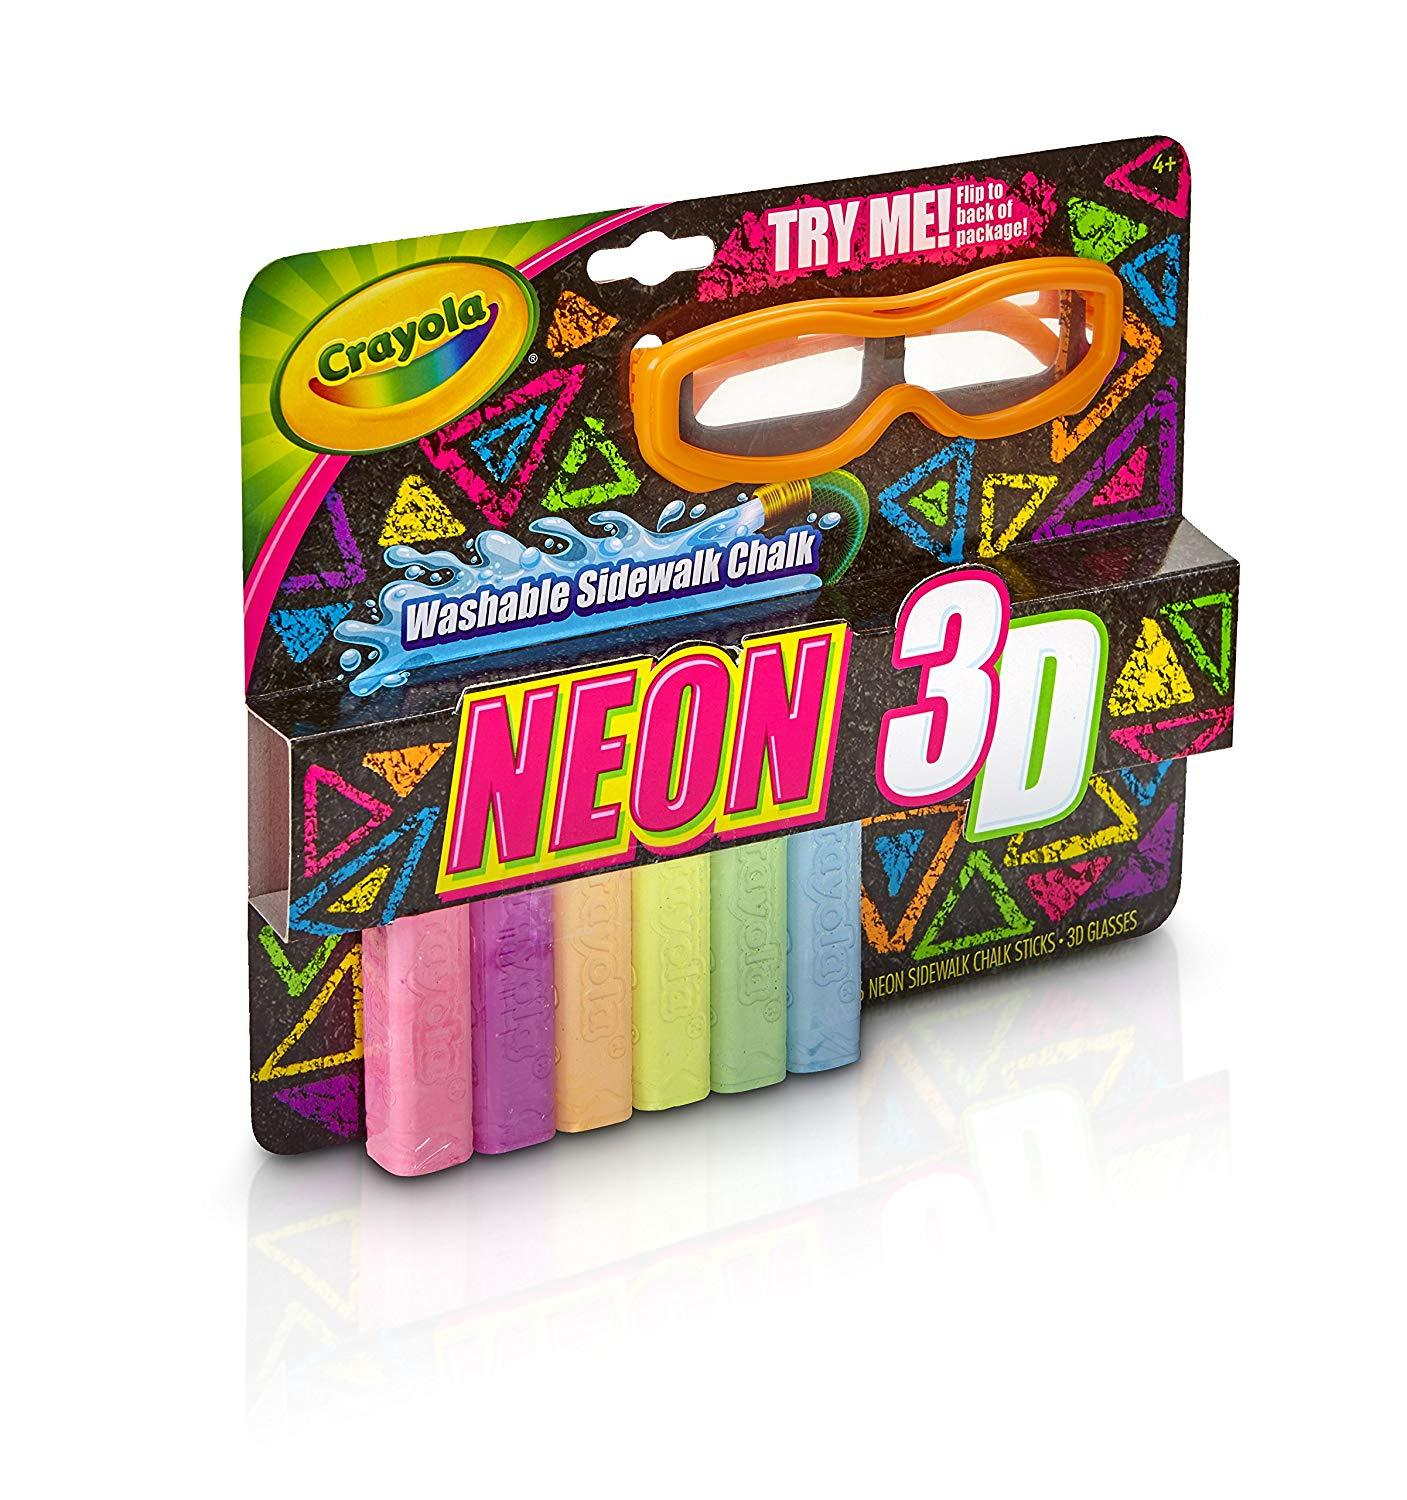 Crayola Coloring Book: 275 listings